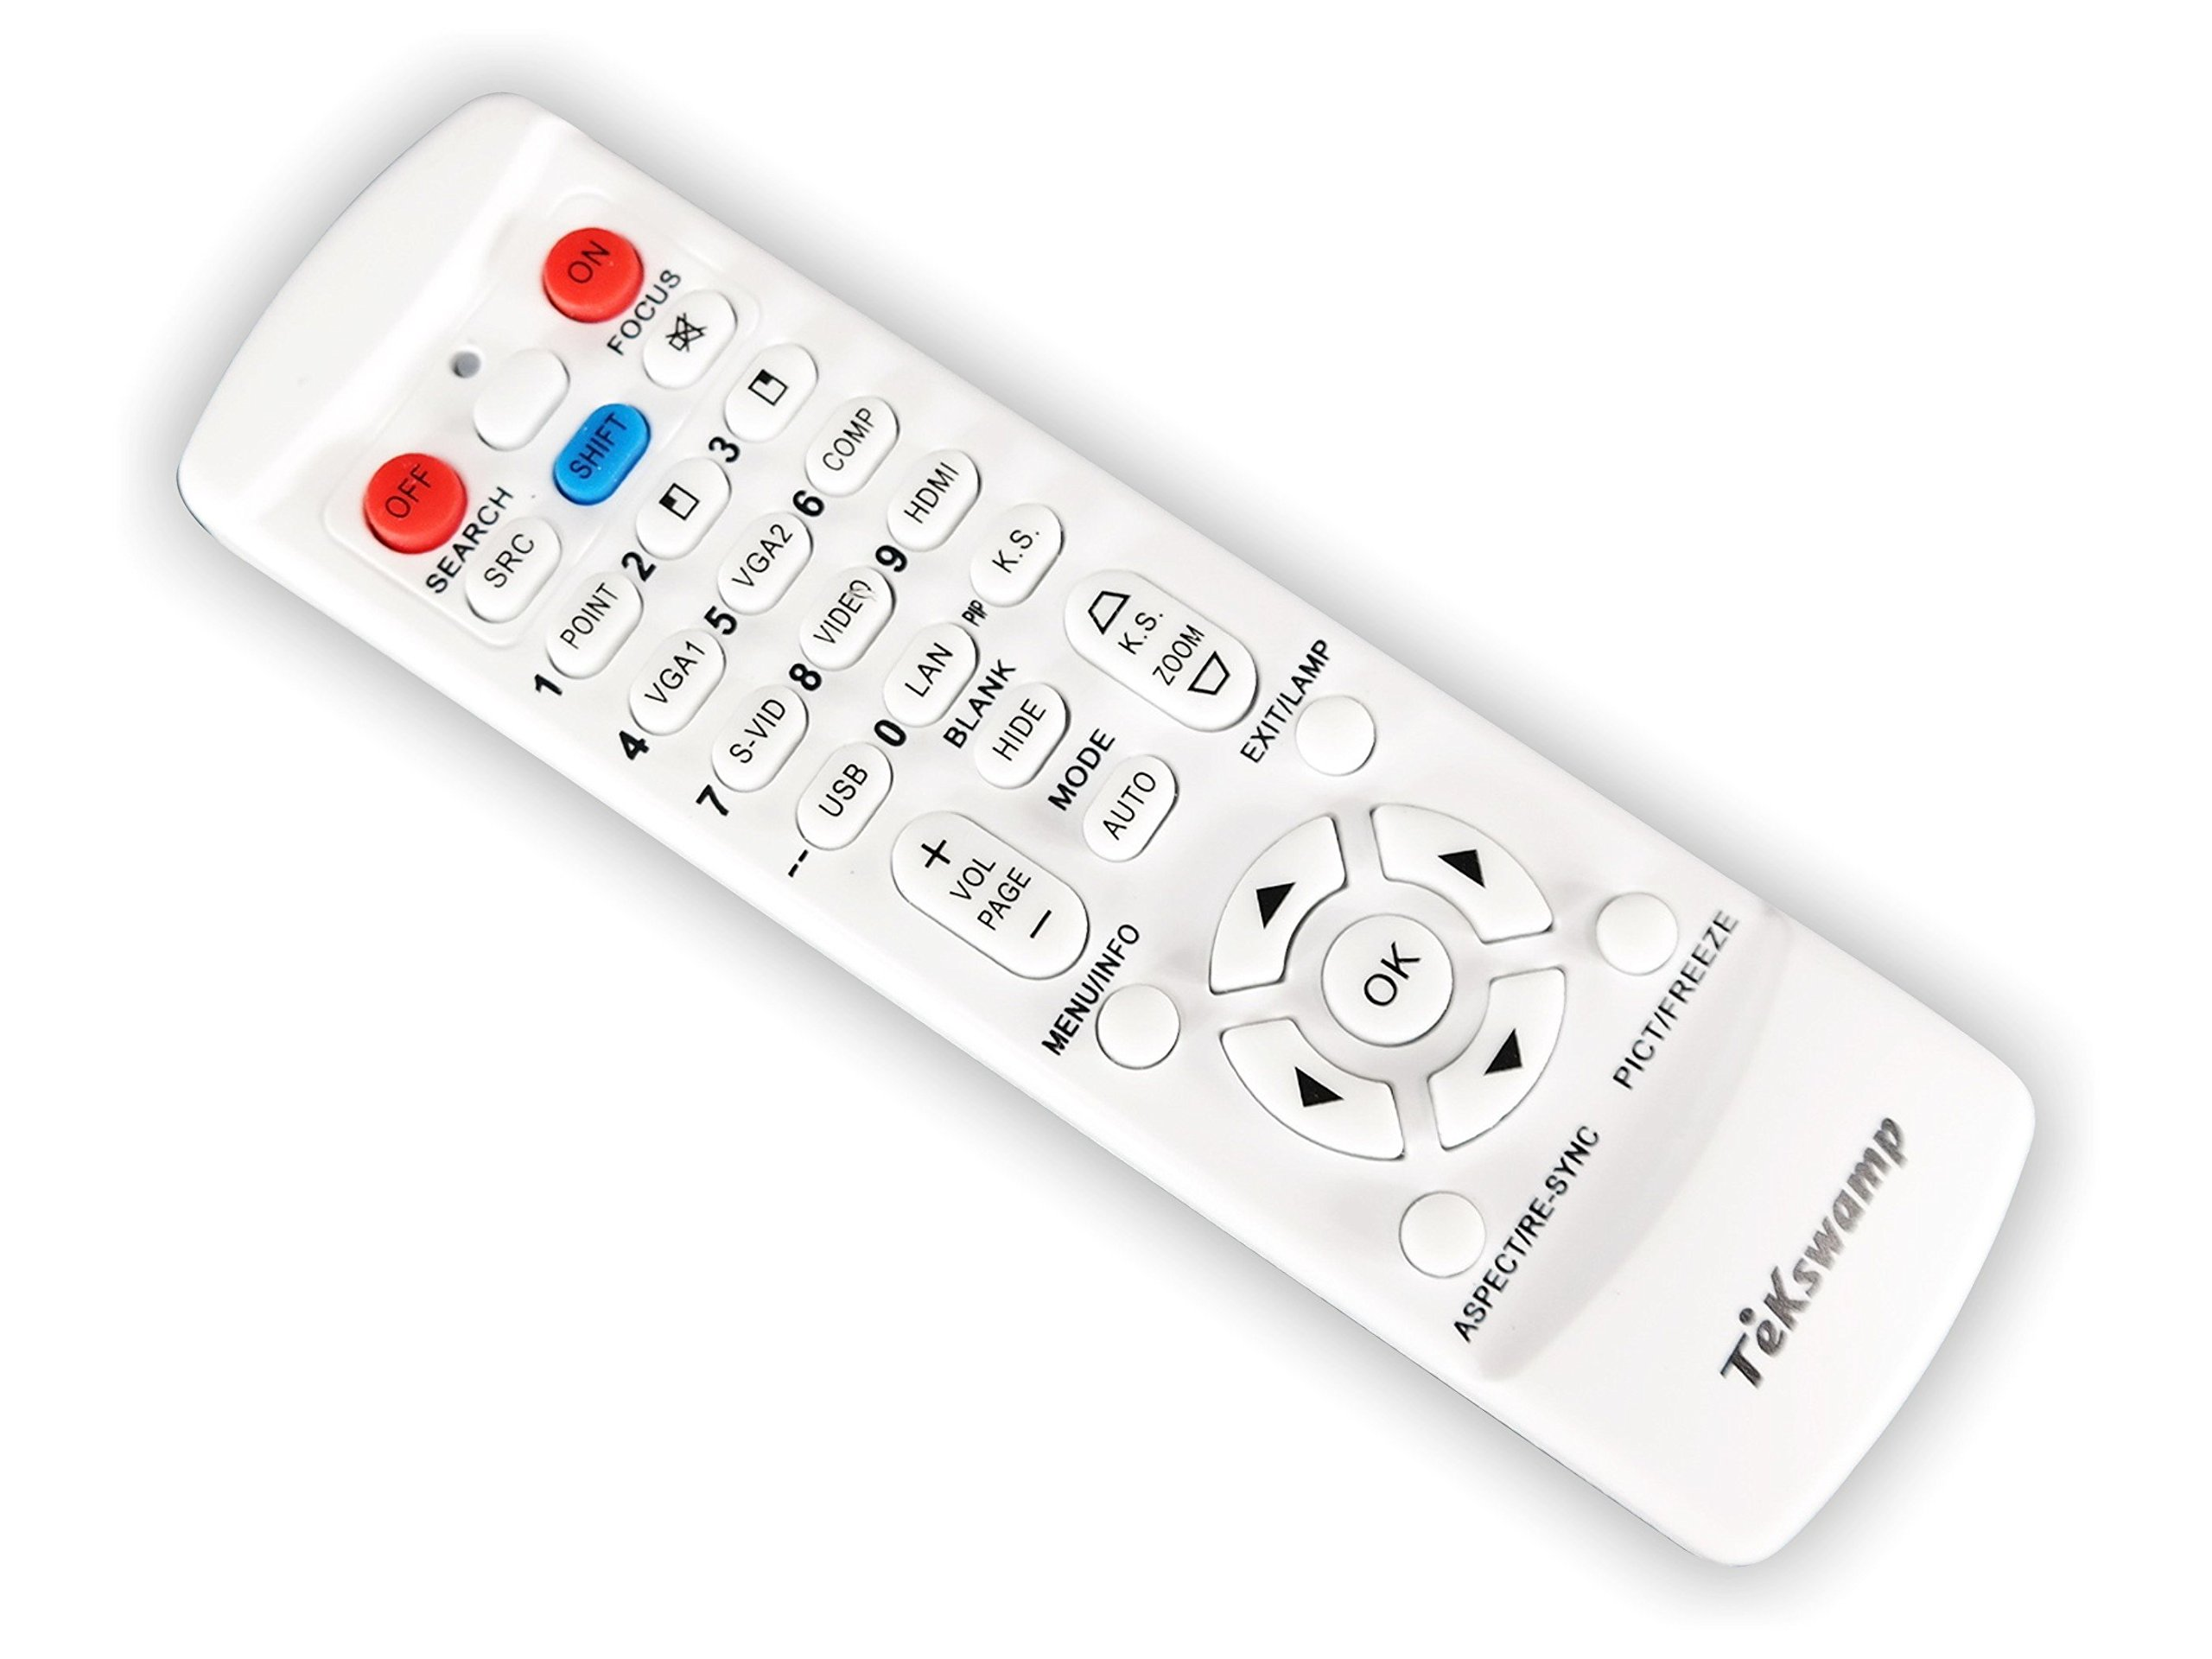 Hitachi CP-AW250N TeKswamp Video Projector Remote Control (White)